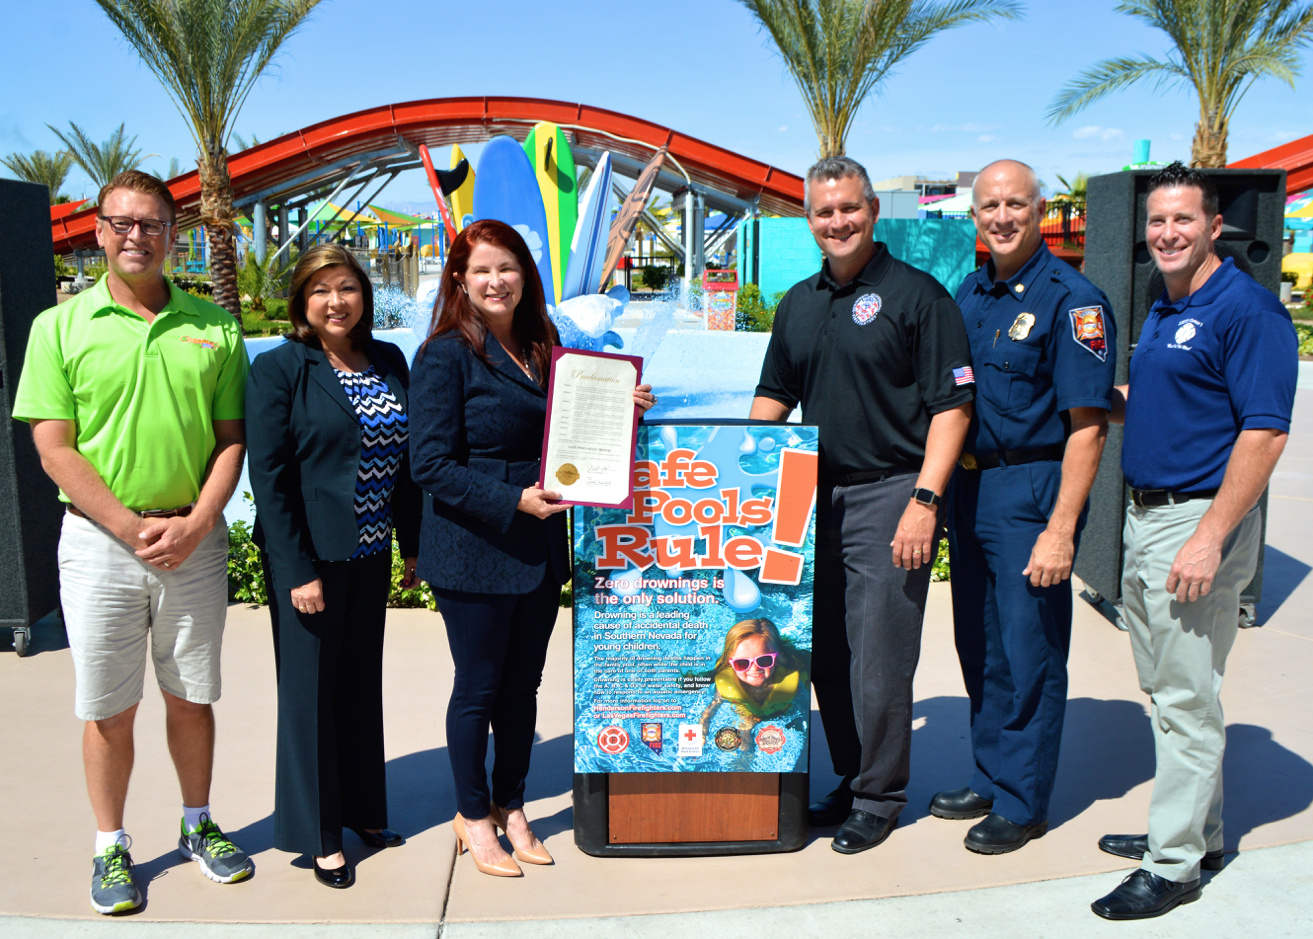 Zero Drownings is the Mission for Las Vegas and Henderson FirefightersZero Drownings is the Mission for Las Vegas and Henderson Firefighters